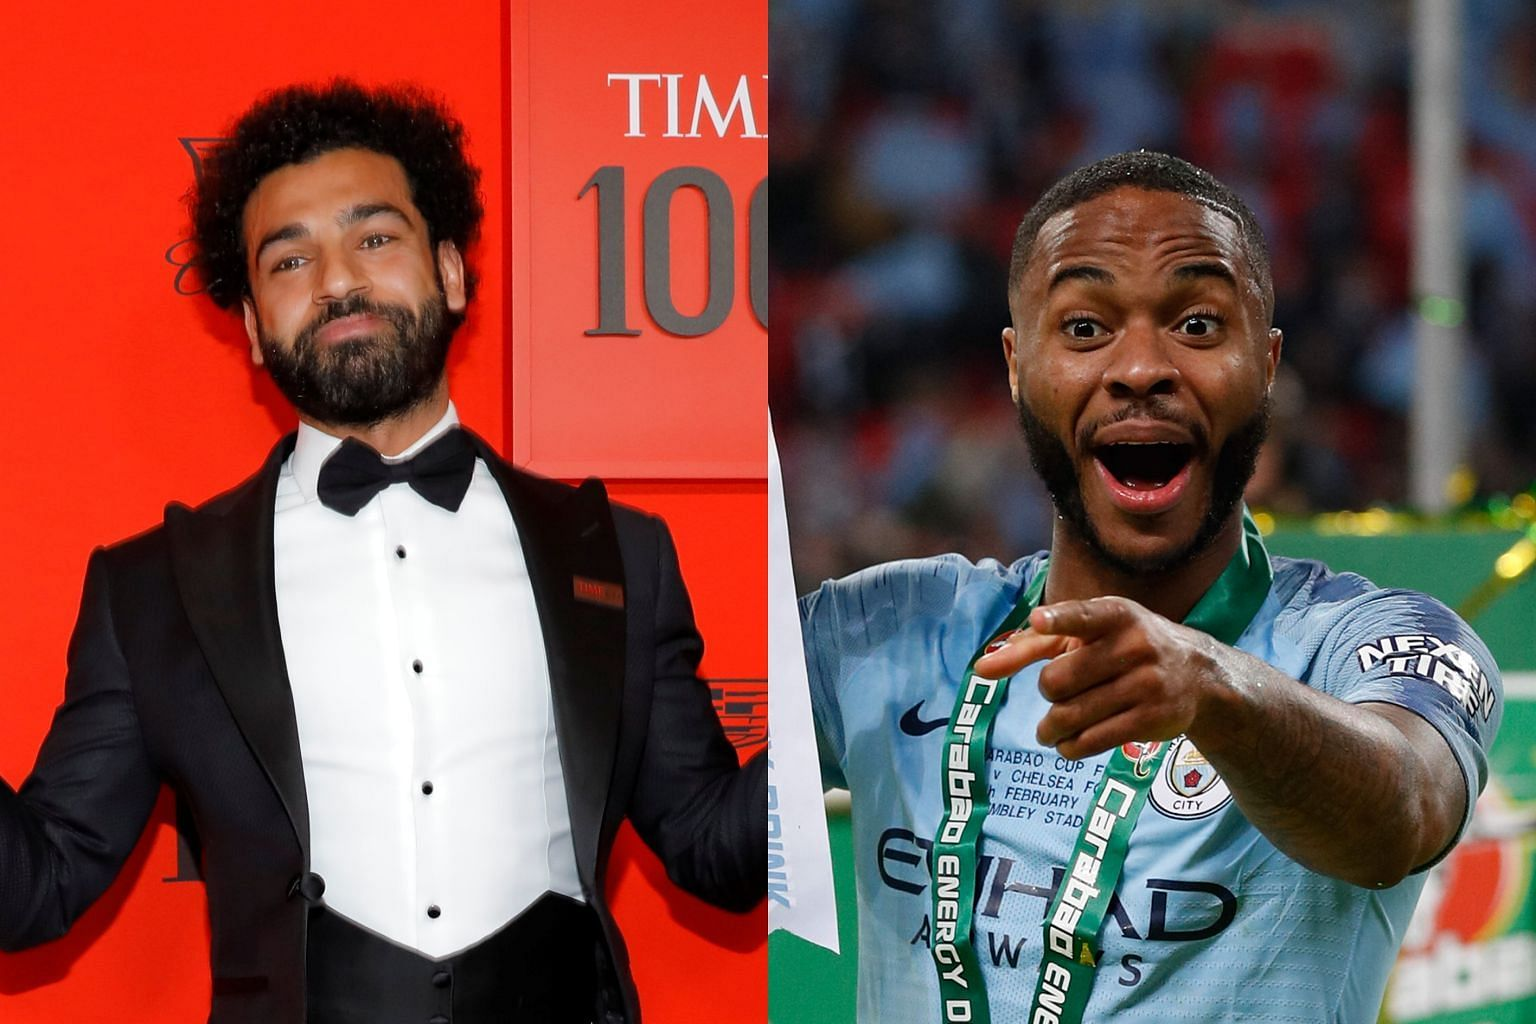 Liverpool's Mohamed Salah (left) arriving for the Time 100 Gala, celebrating Time magazine's 100 most influential people in the world in New York on Tuesday. Raheem Sterling (right) with the League Cup after Manchester City beat Chelsea at Wembley Stadium